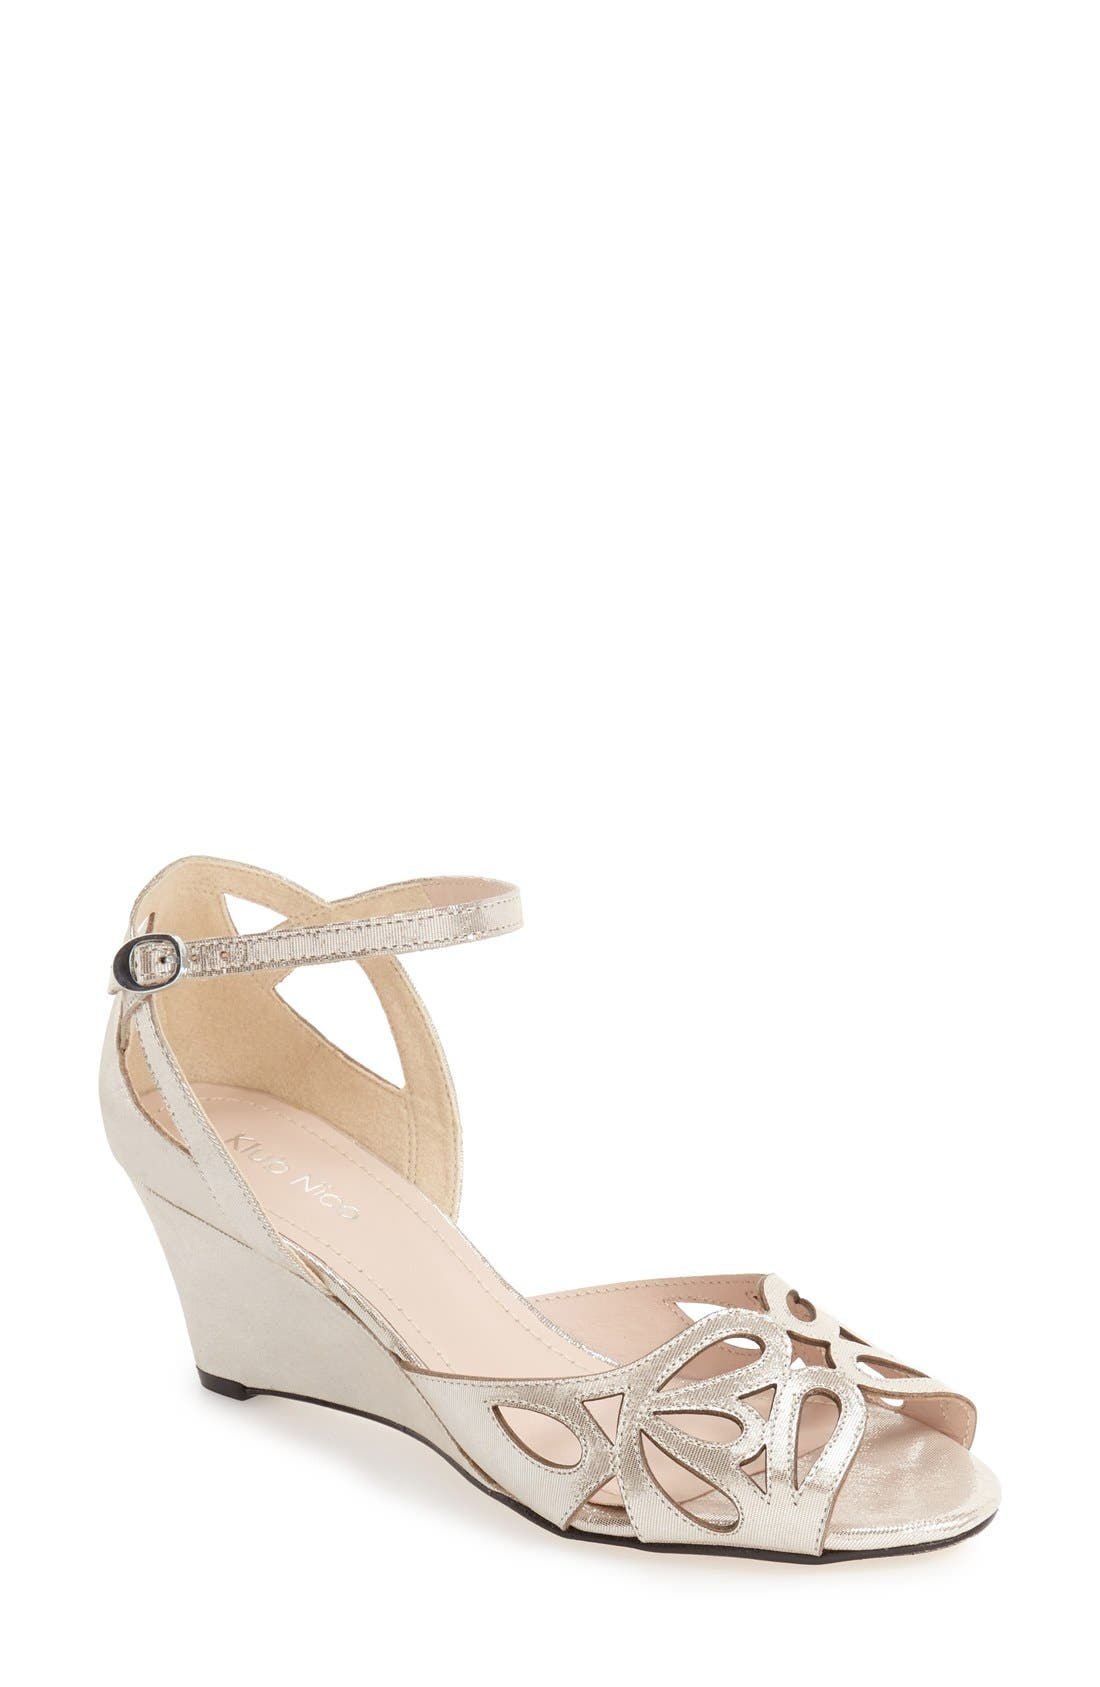 KLUB NICO,                             'Kismet' Wedge Sandal,                             Main thumbnail 1, color,                             SILVER LEATHER